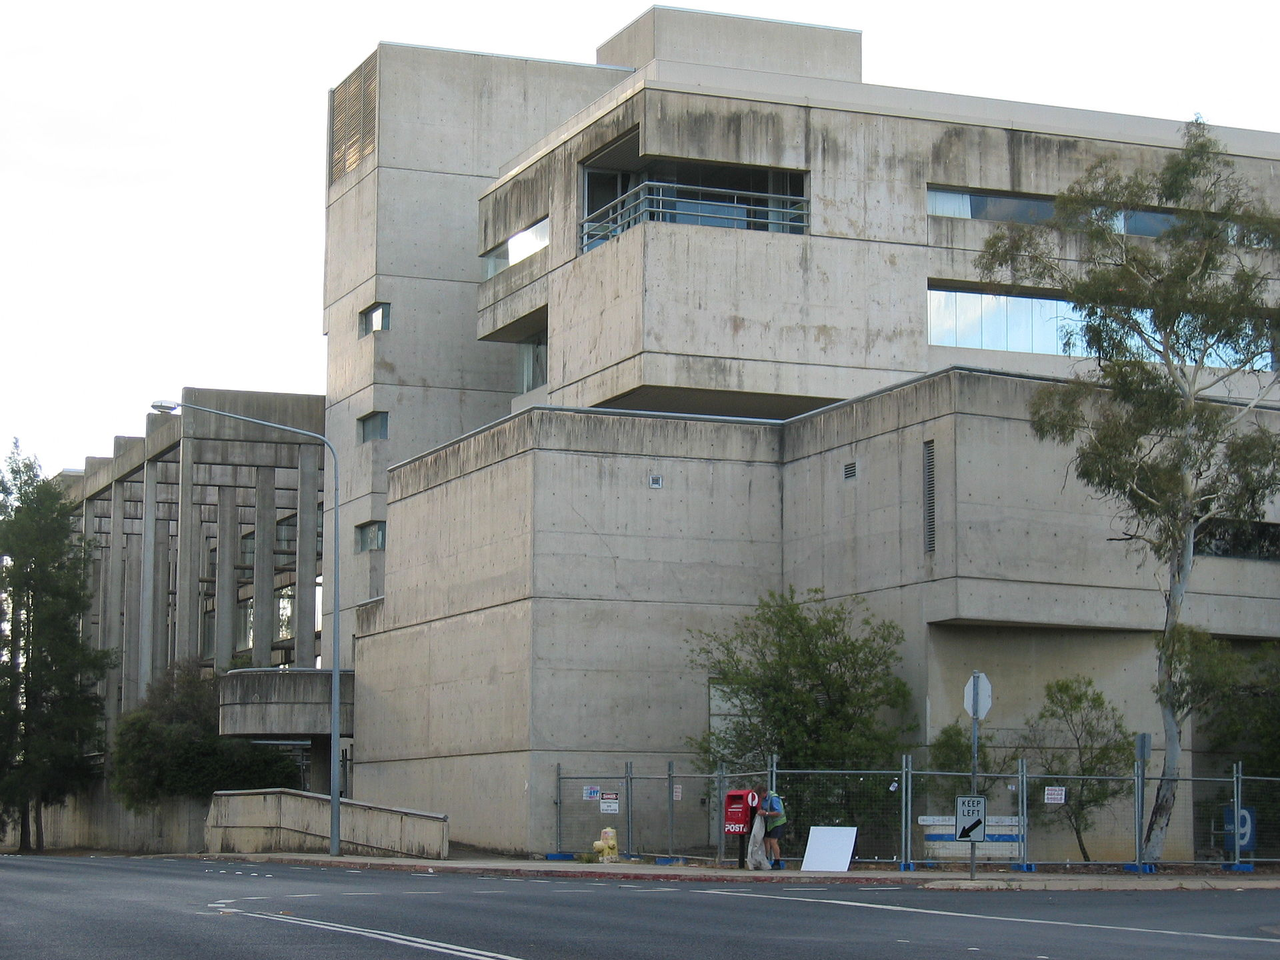 Cameron Offices designed by John Andrews, 1972